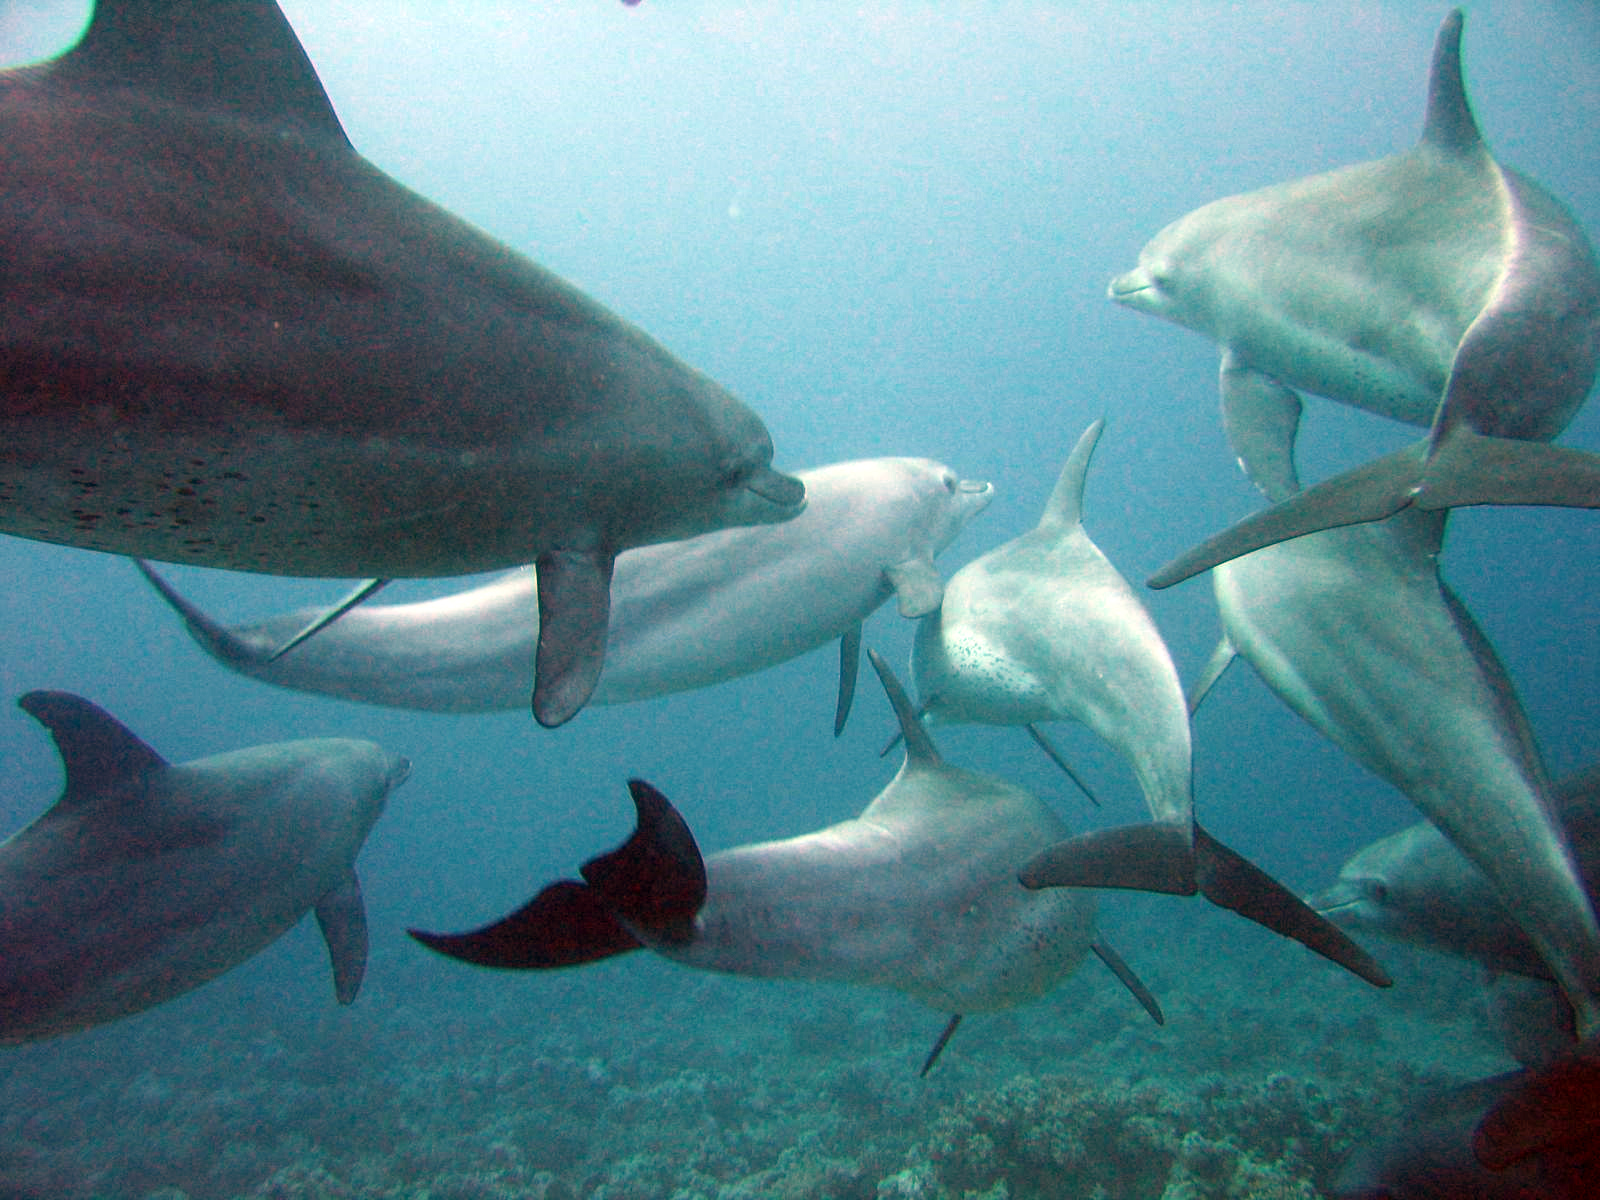 Through observational studies, Dolphins have displayed social behavior that is similar in the ways humans interact.